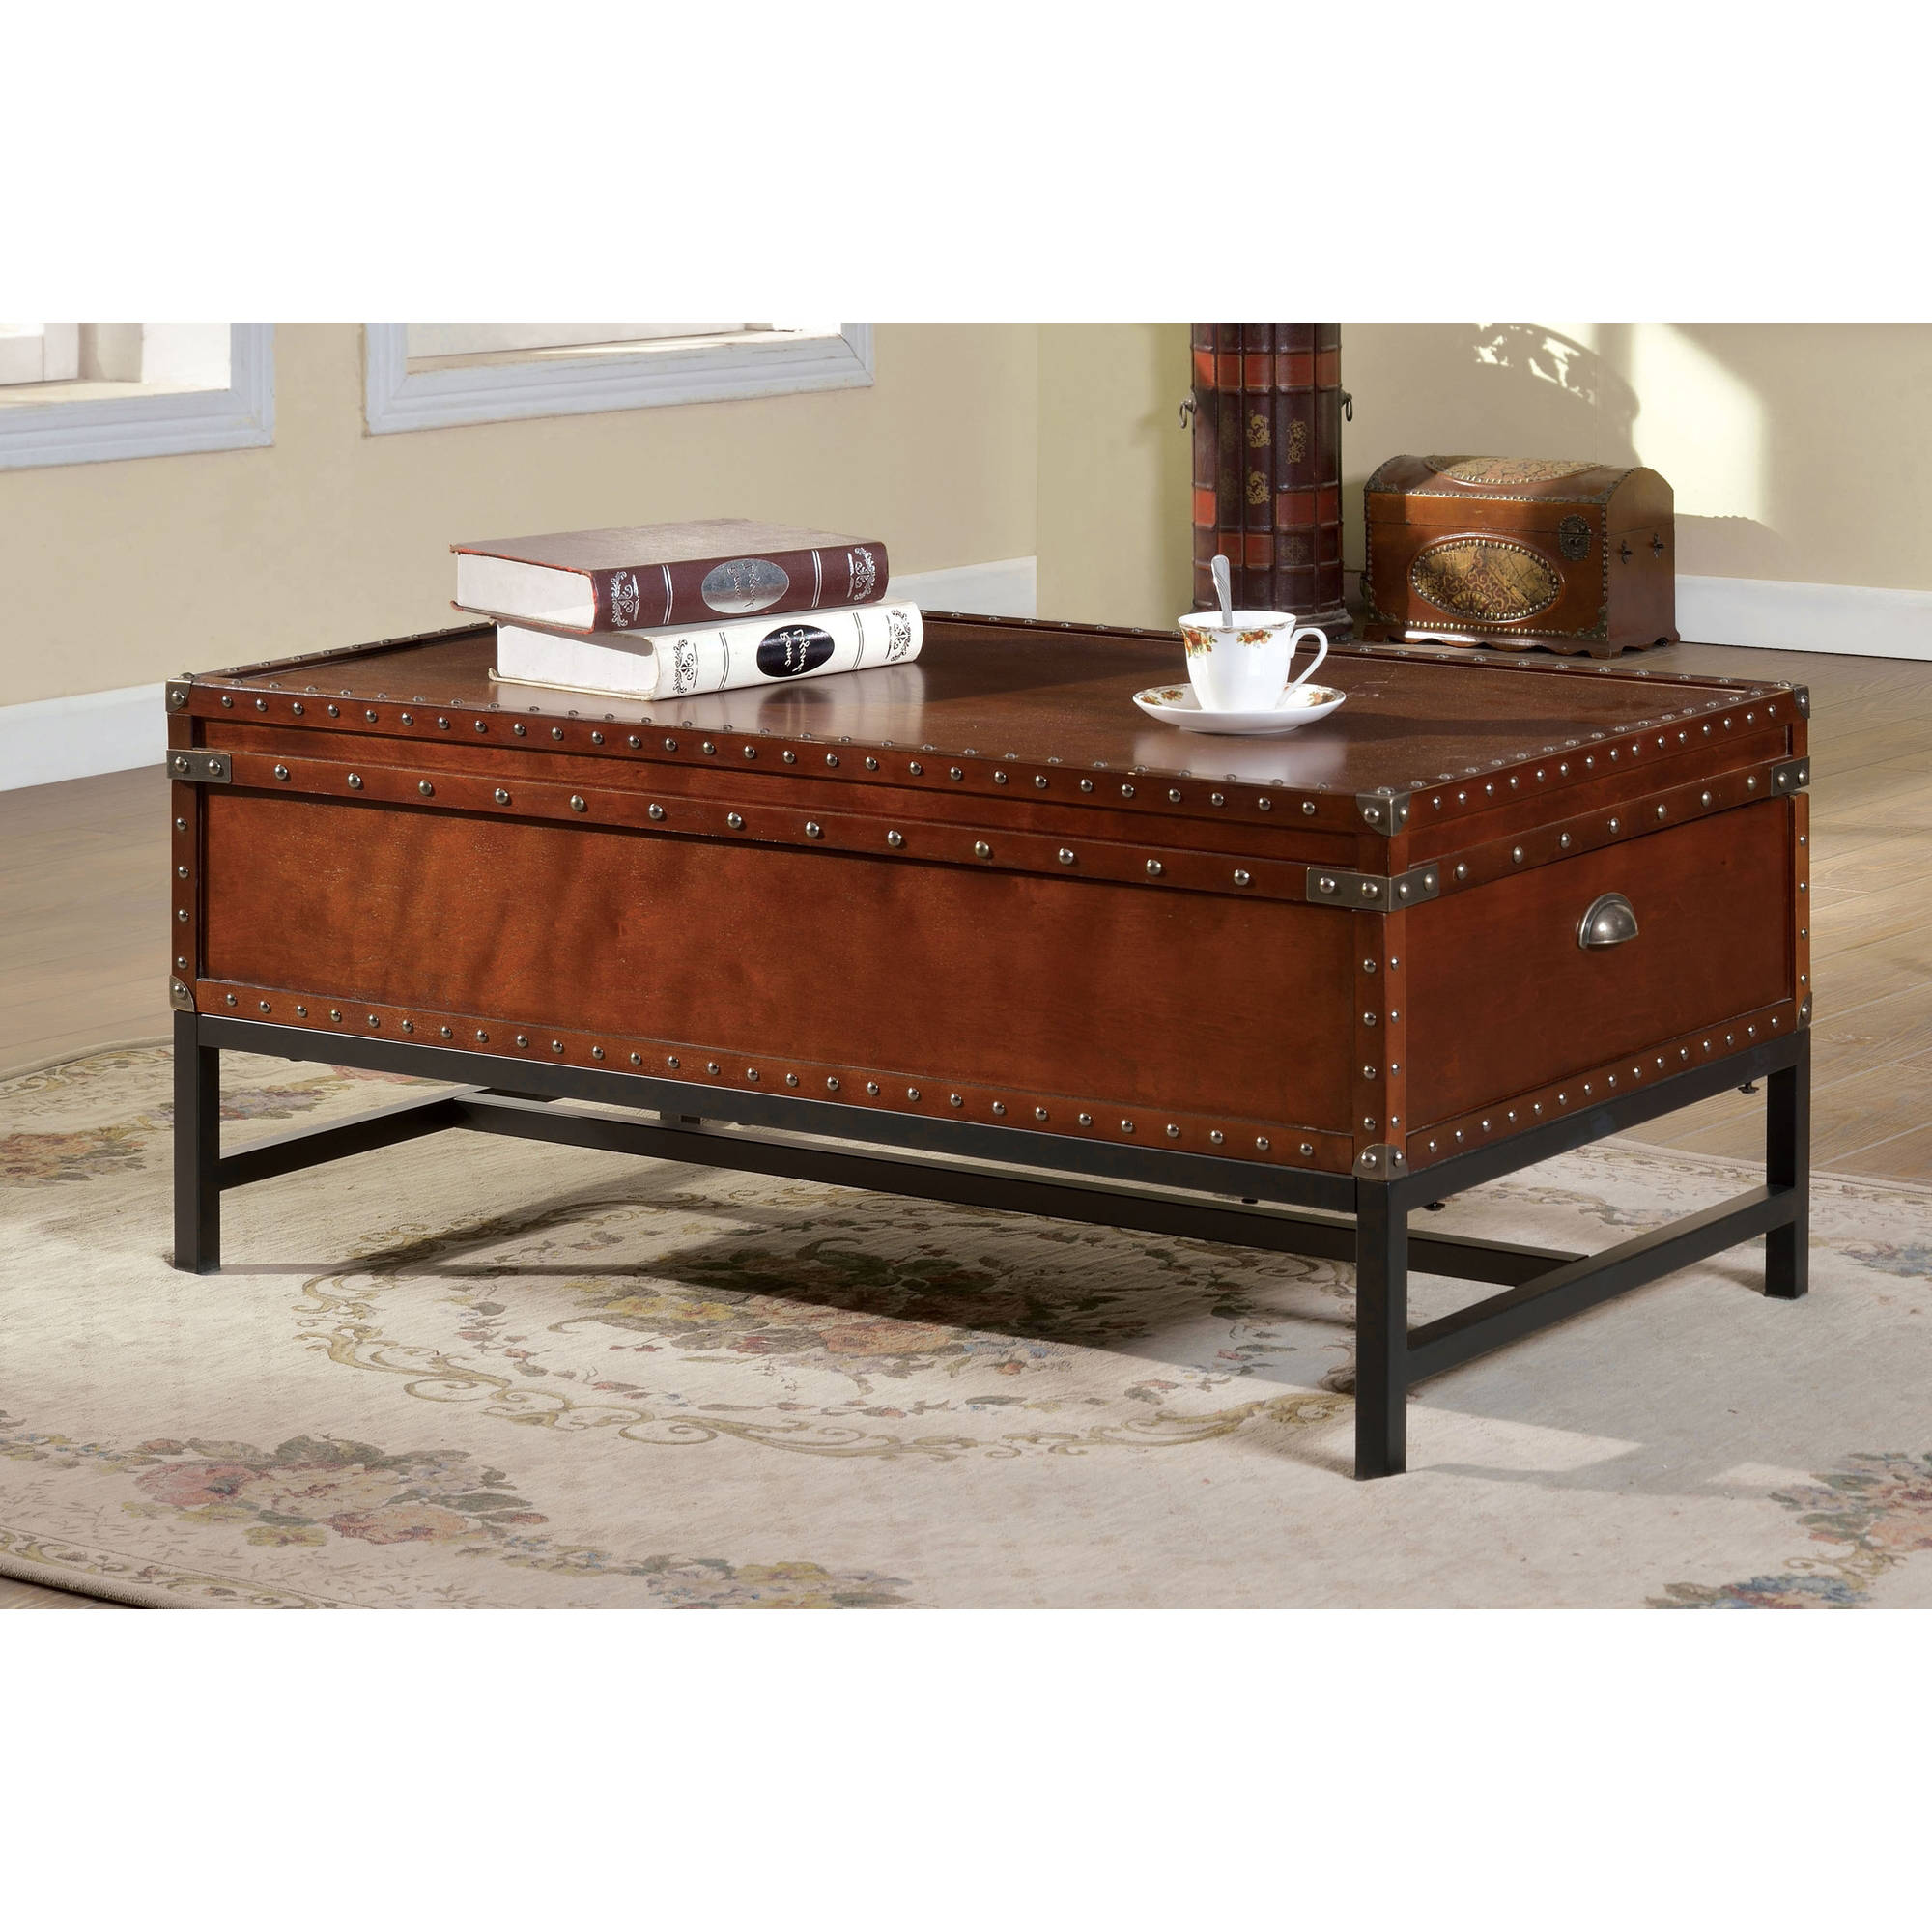 Furniture Of America Millard Trunk Style Coffee Table Cherry